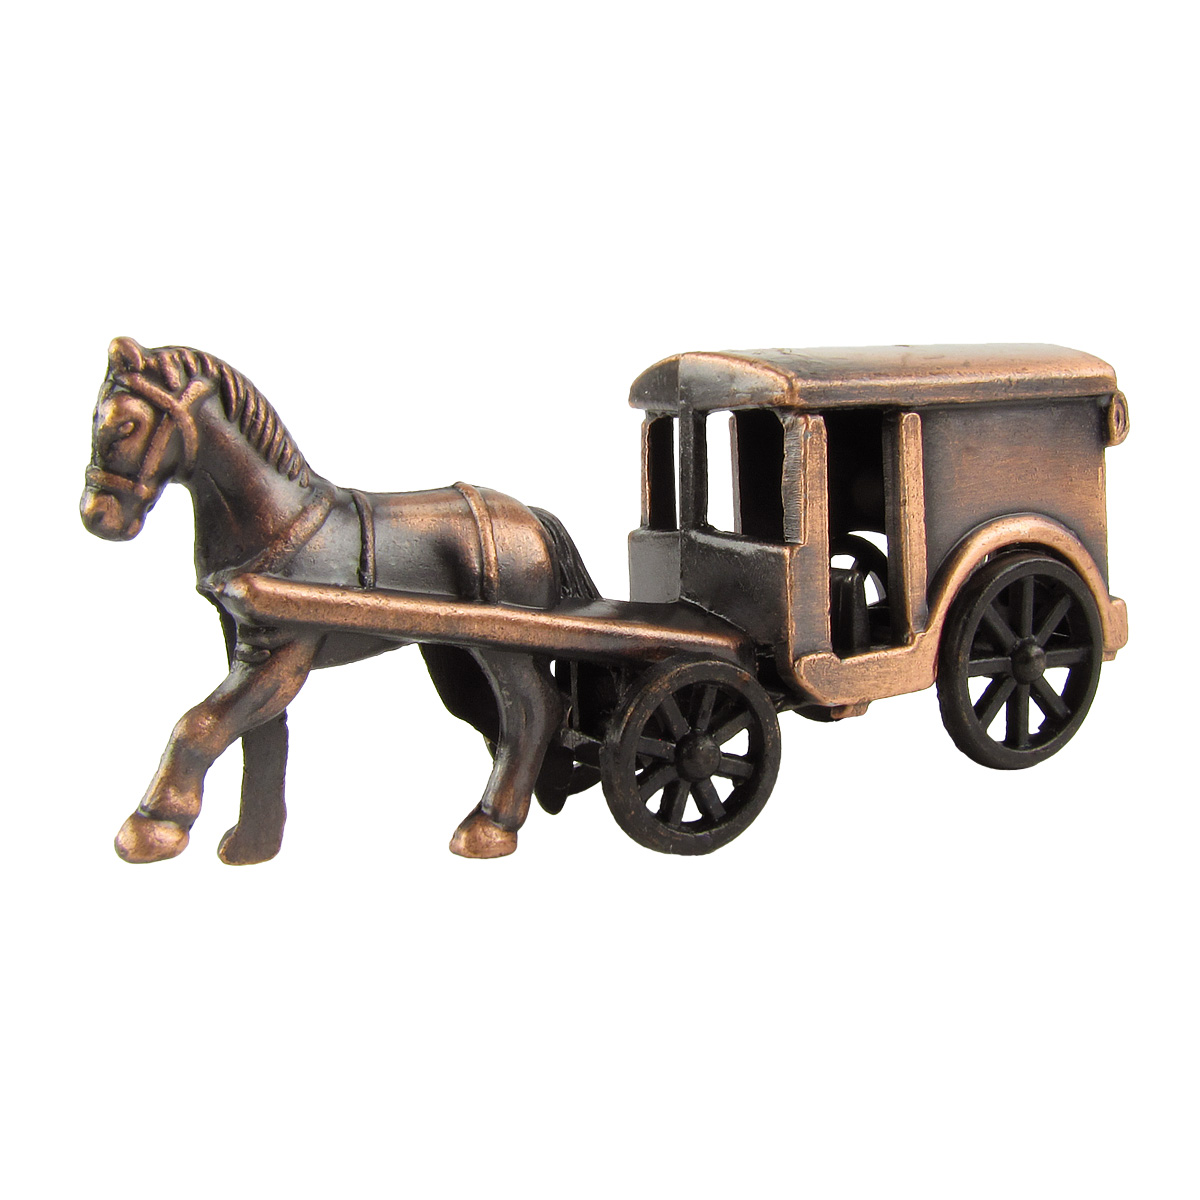 1:48 Scale O Gauge Model Train Accessory Amish Horse And Buggy Pencil Sharpener by